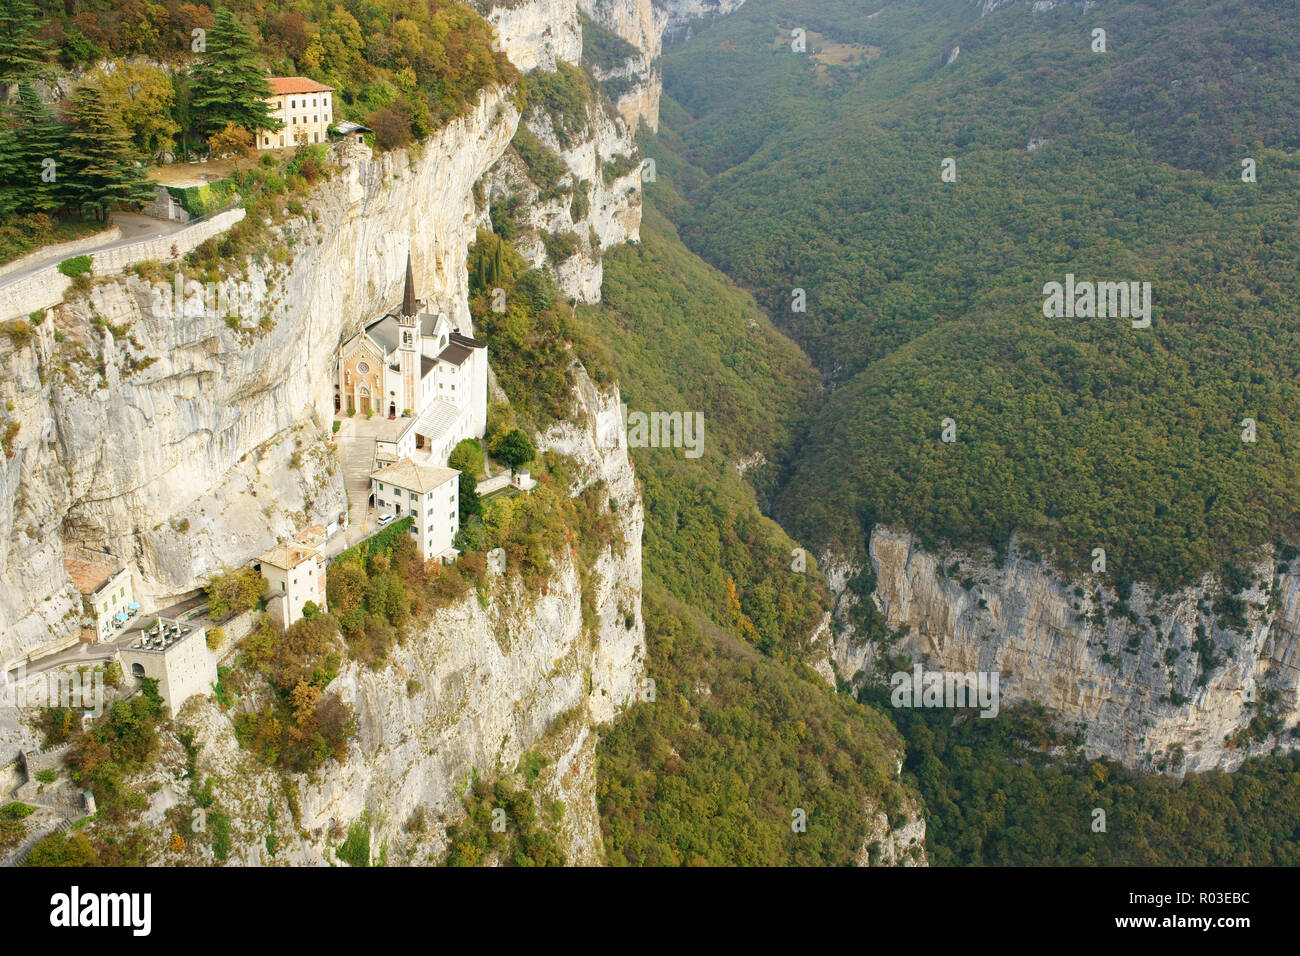 SANCTUARY ON A LEDGE ON A CLIFF FACE (aerial view from a 6-meter mast). Sanctuary of Madonna della Corona. Spiazzi, Province of Verona, Veneto, Italy. - Stock Image